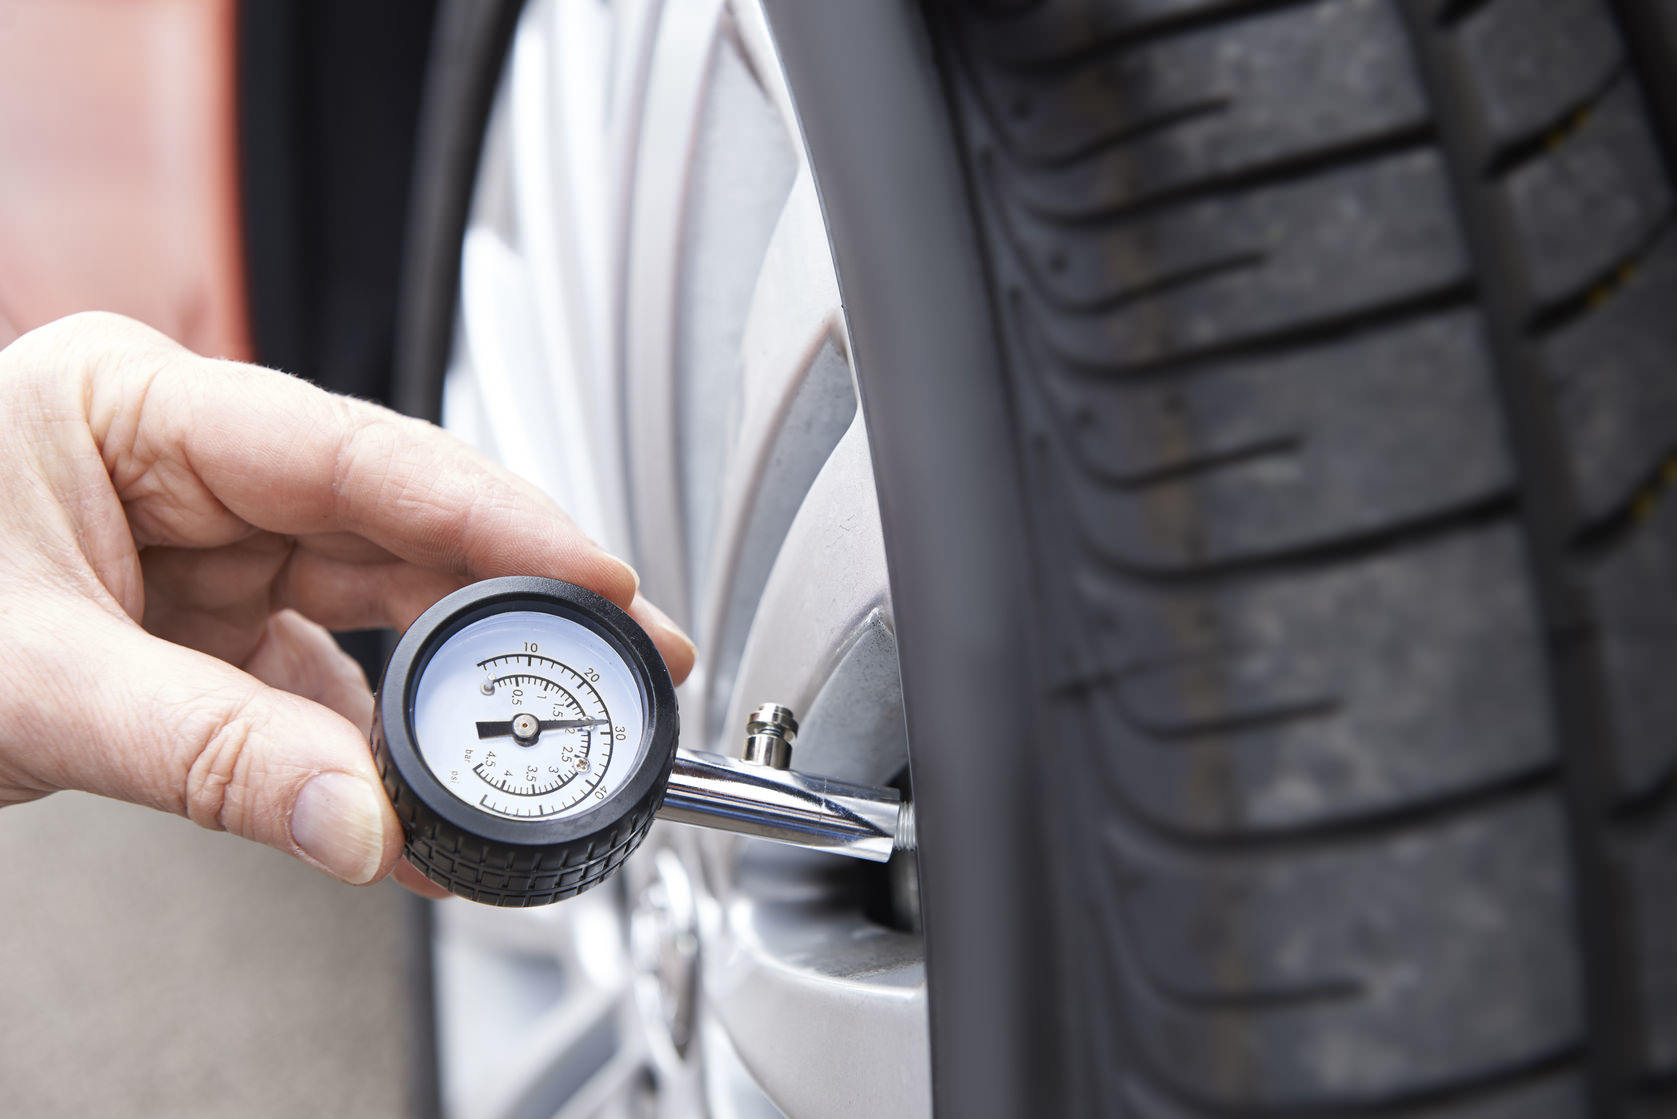 Pressure gauge measuring quality of repaired punctured tyre